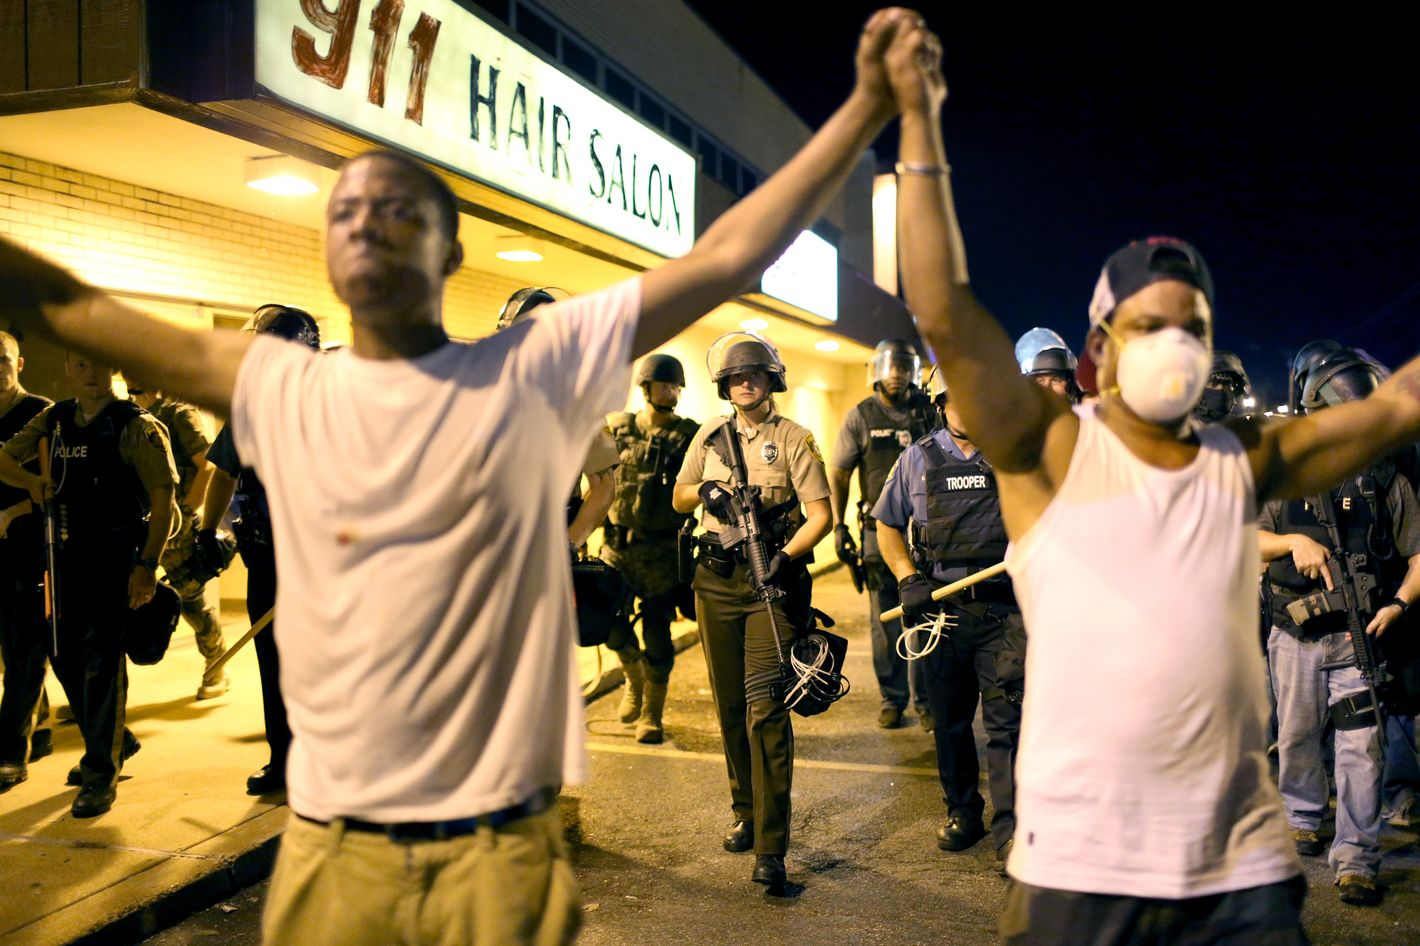 FERGUSON, MO - AUGUST 19:  Protesters are pushed back by police on August 19, 2014 in Ferguson, Missouri. Violent outbreaks have taken place in Ferguson since the shooting death of unarmed teenager Michael Brown by a Ferguson police officer on August 9th.  (Photo by Joe Raedle/Getty Images)